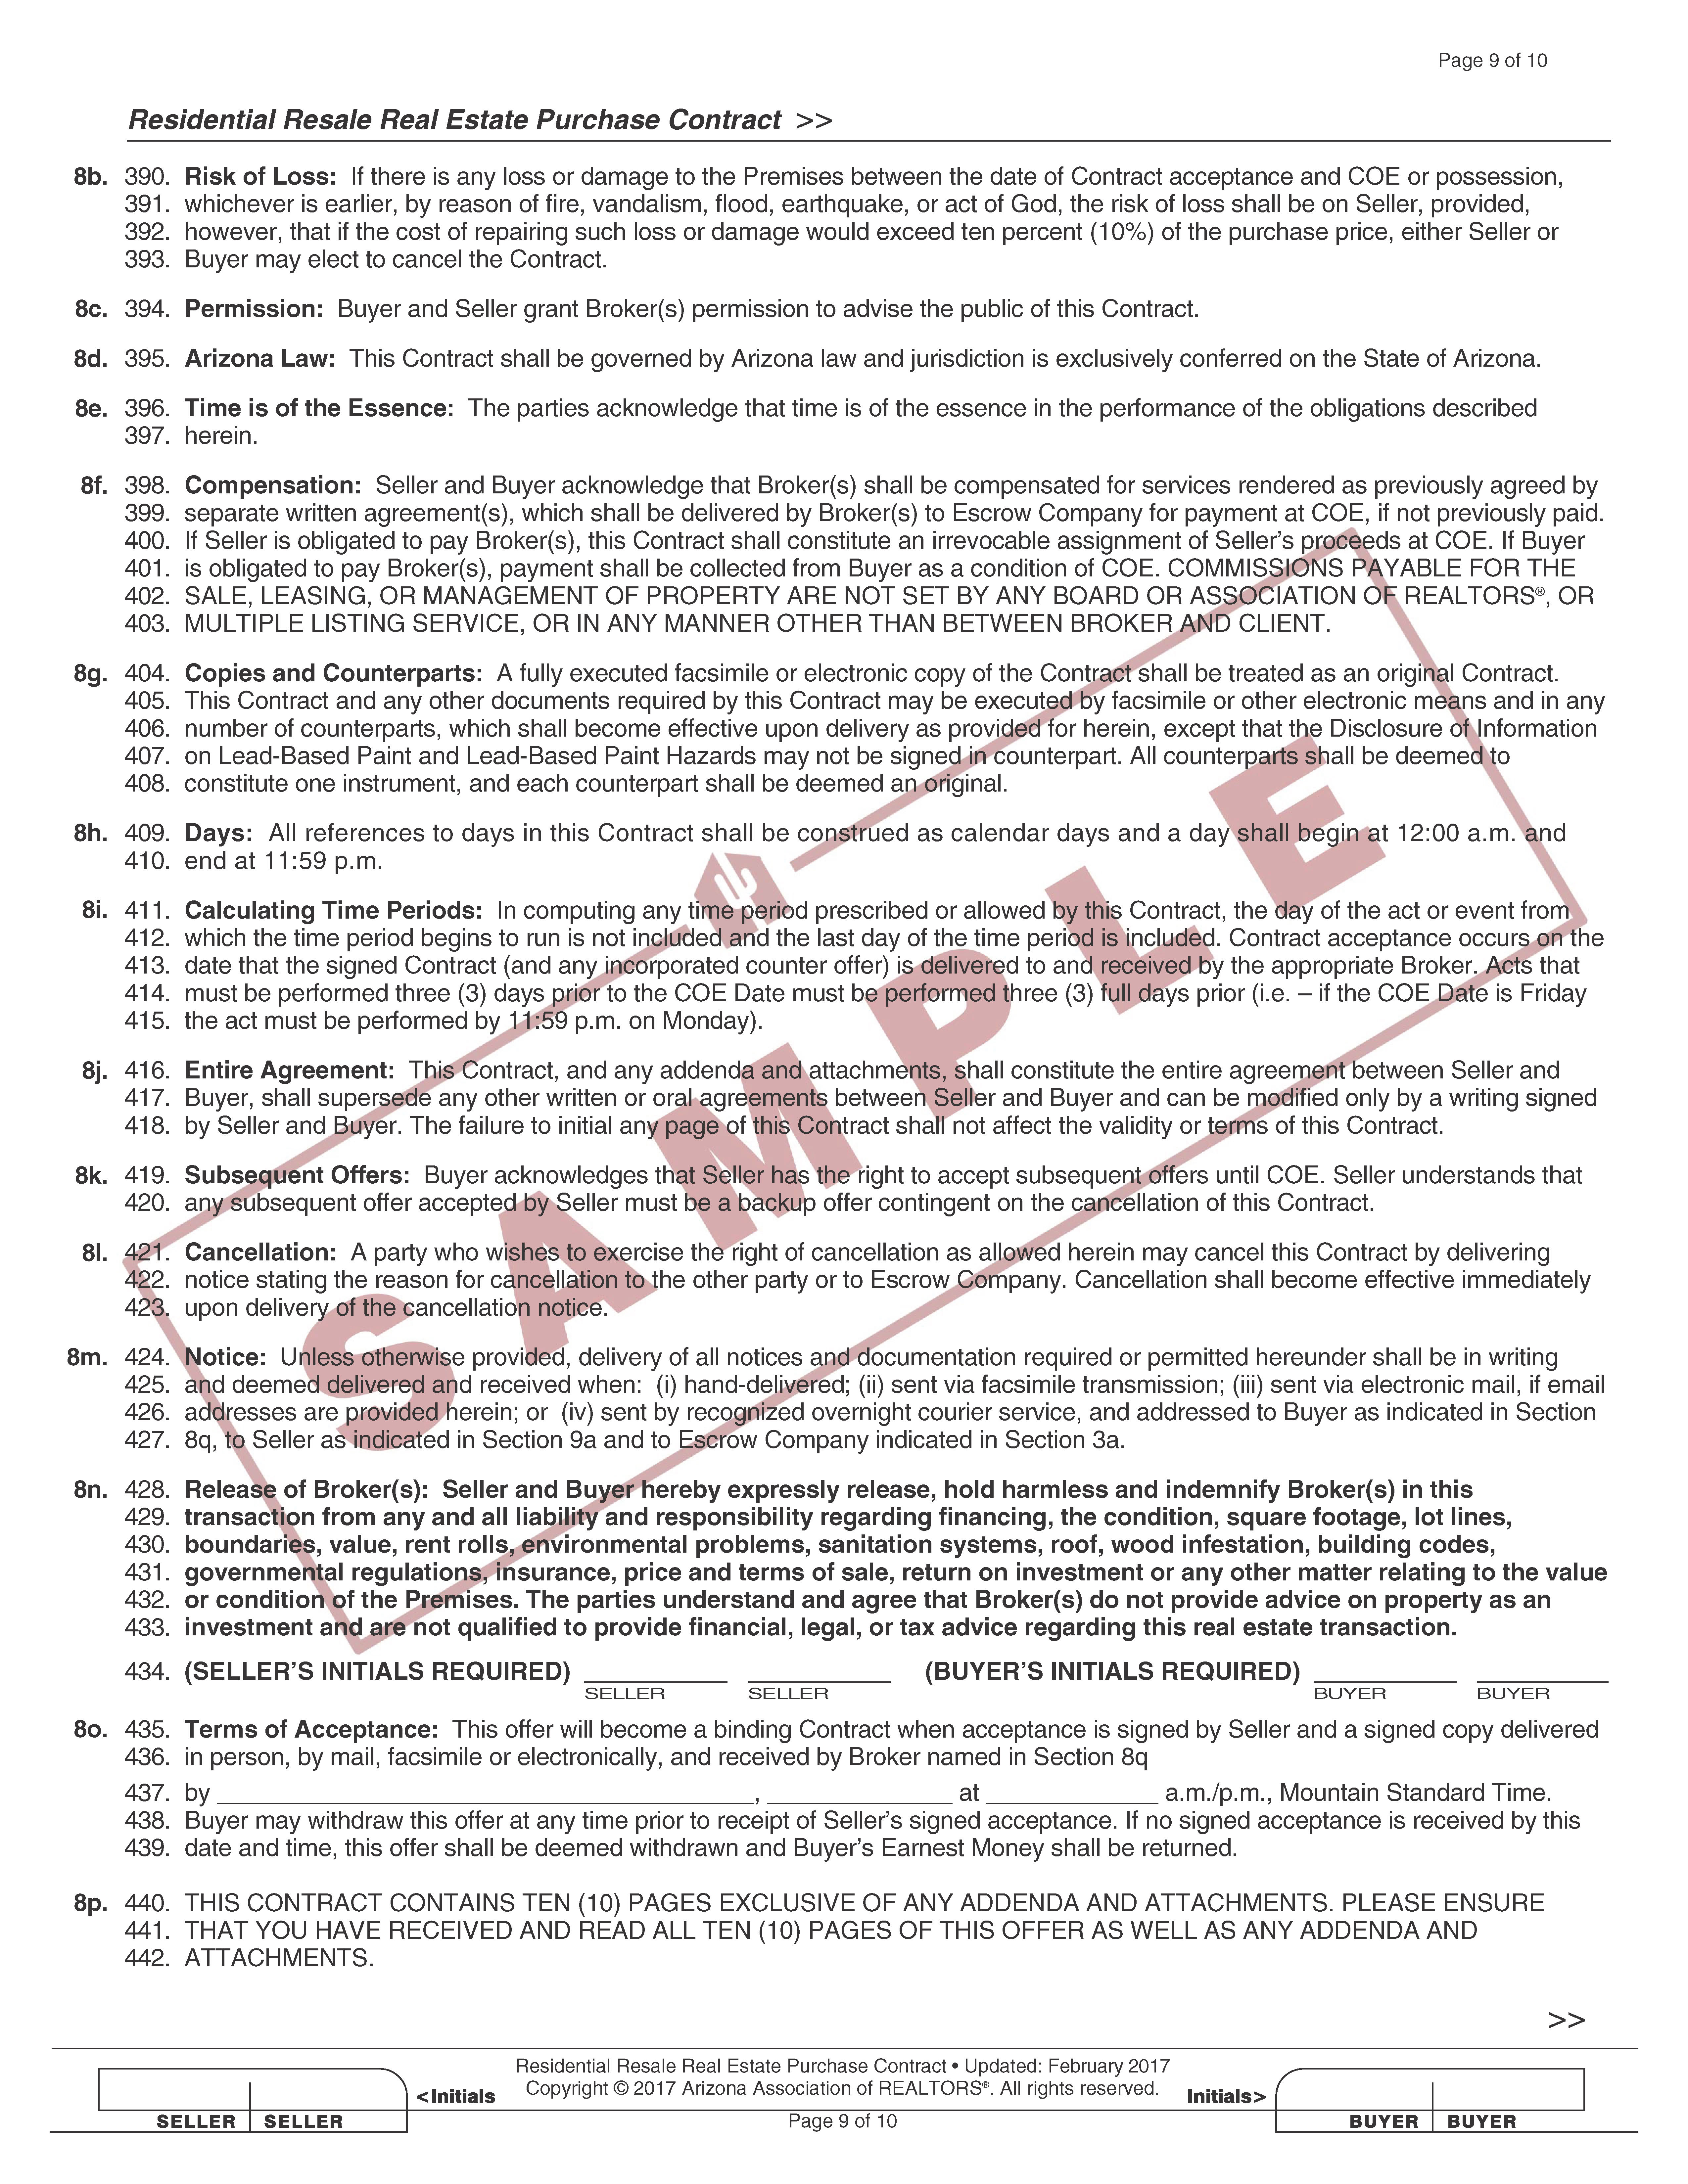 residential_resale_real_estate_purchase_contract_form_2-2017-sample_page_10